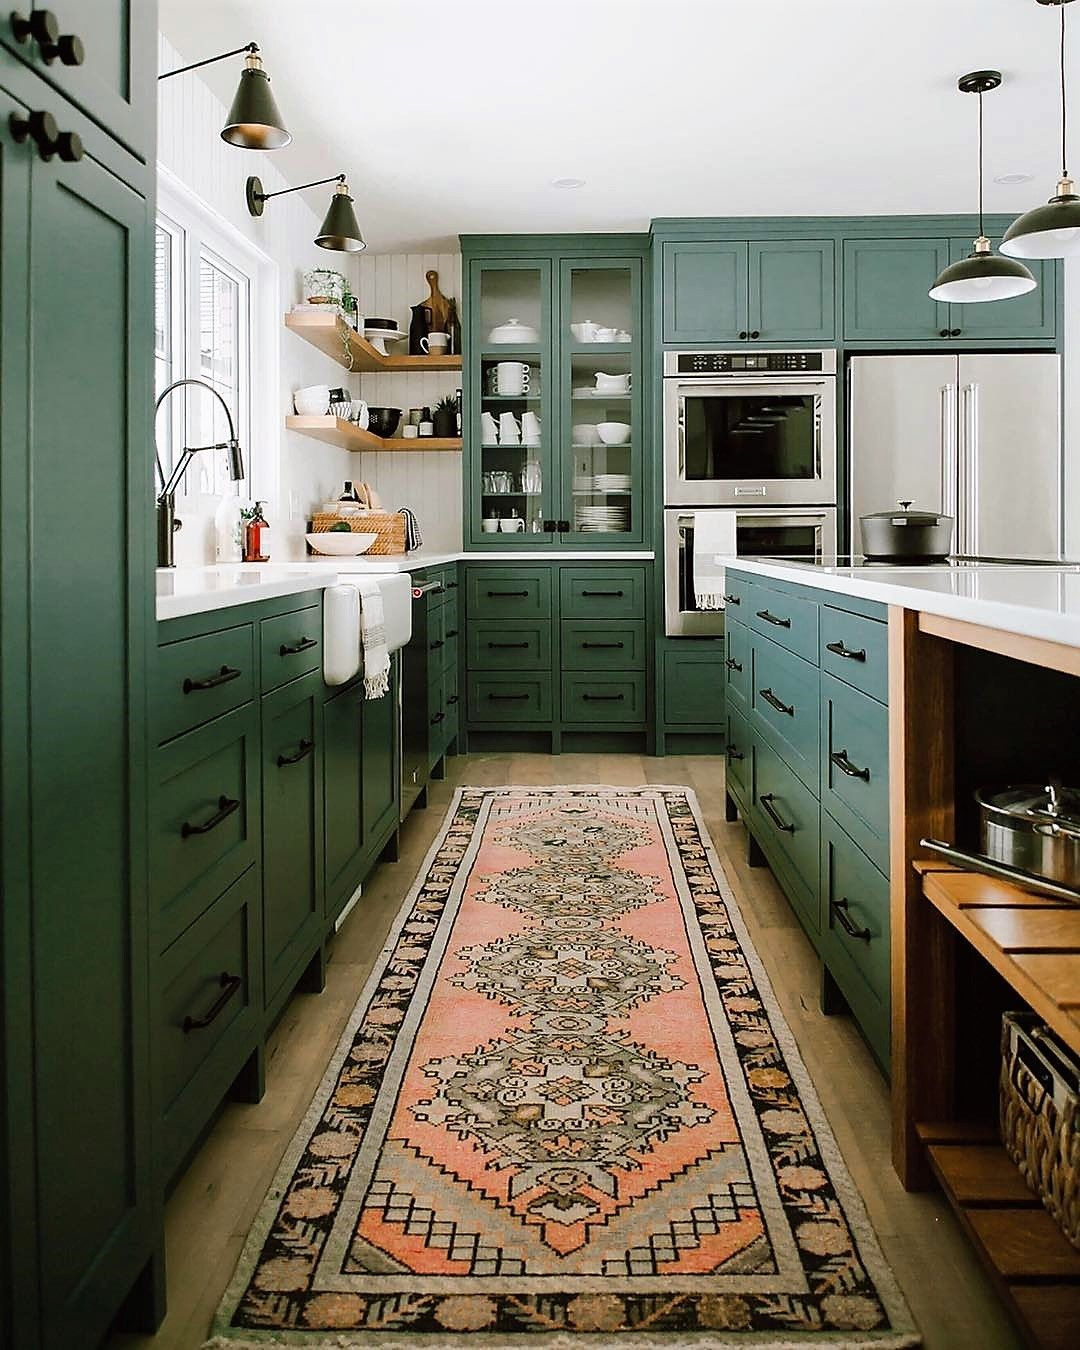 Ig jaclyn peters design my future home in pinterest home